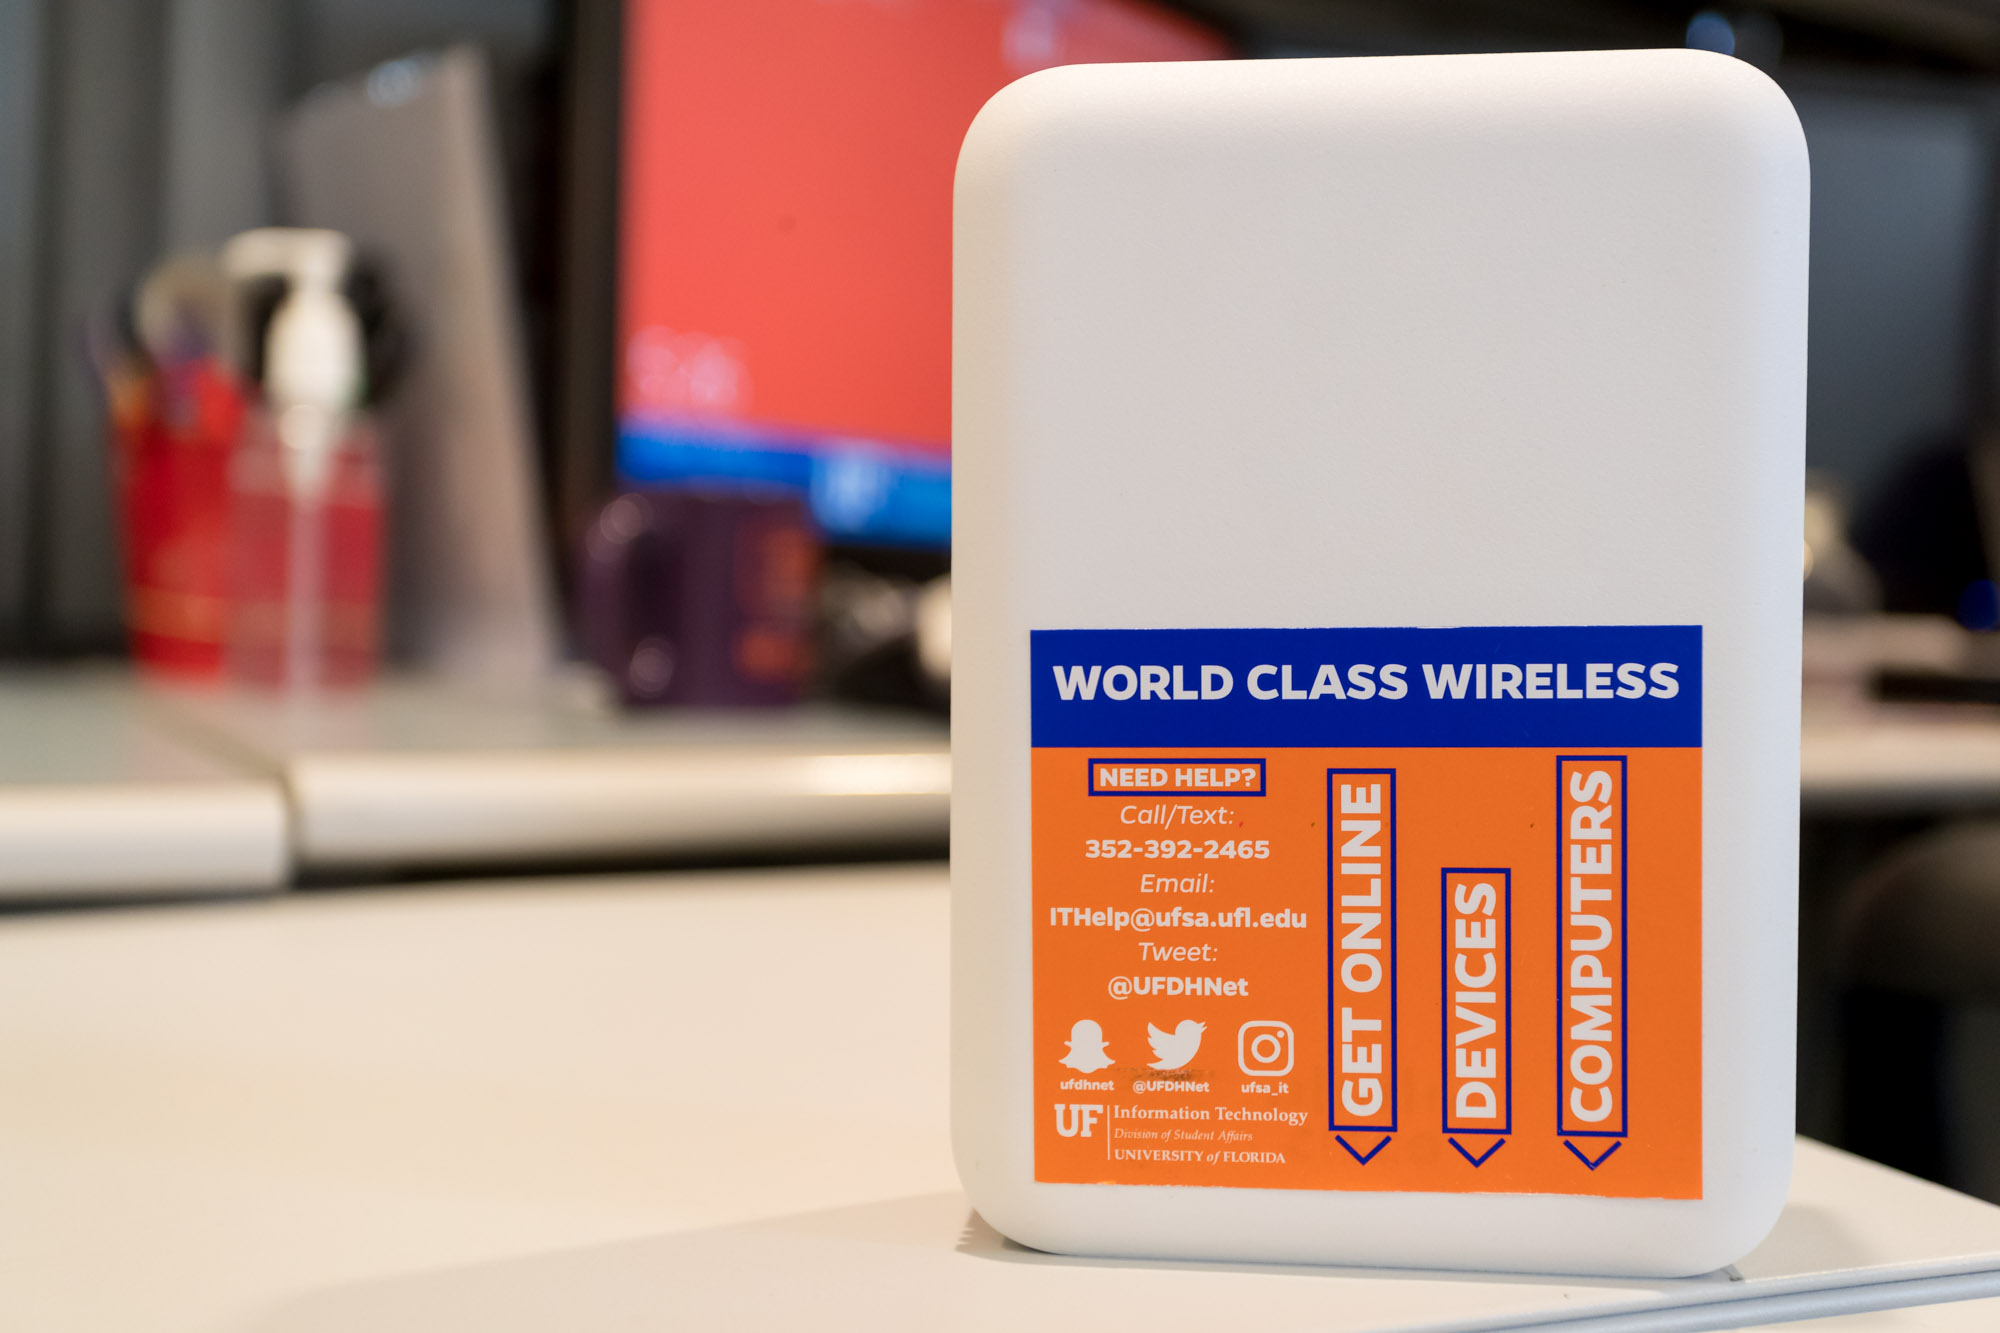 UFSA IT's World Class Wireless access point with info label